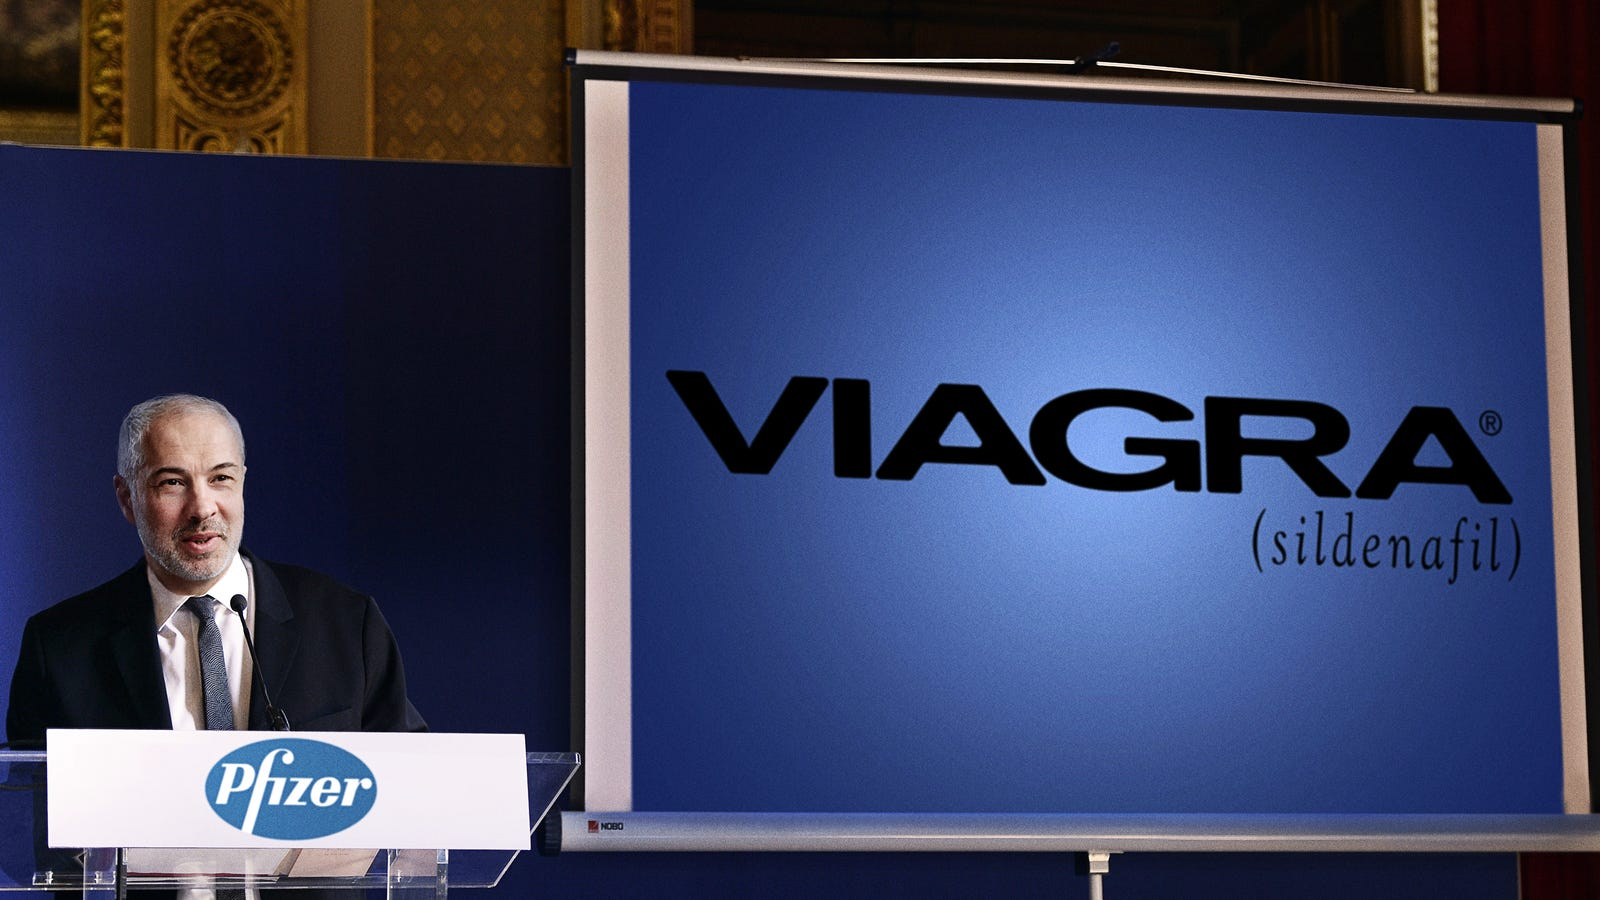 Viagra Announces Real Medicine That Gave Customers Erections Was Confidence All Along